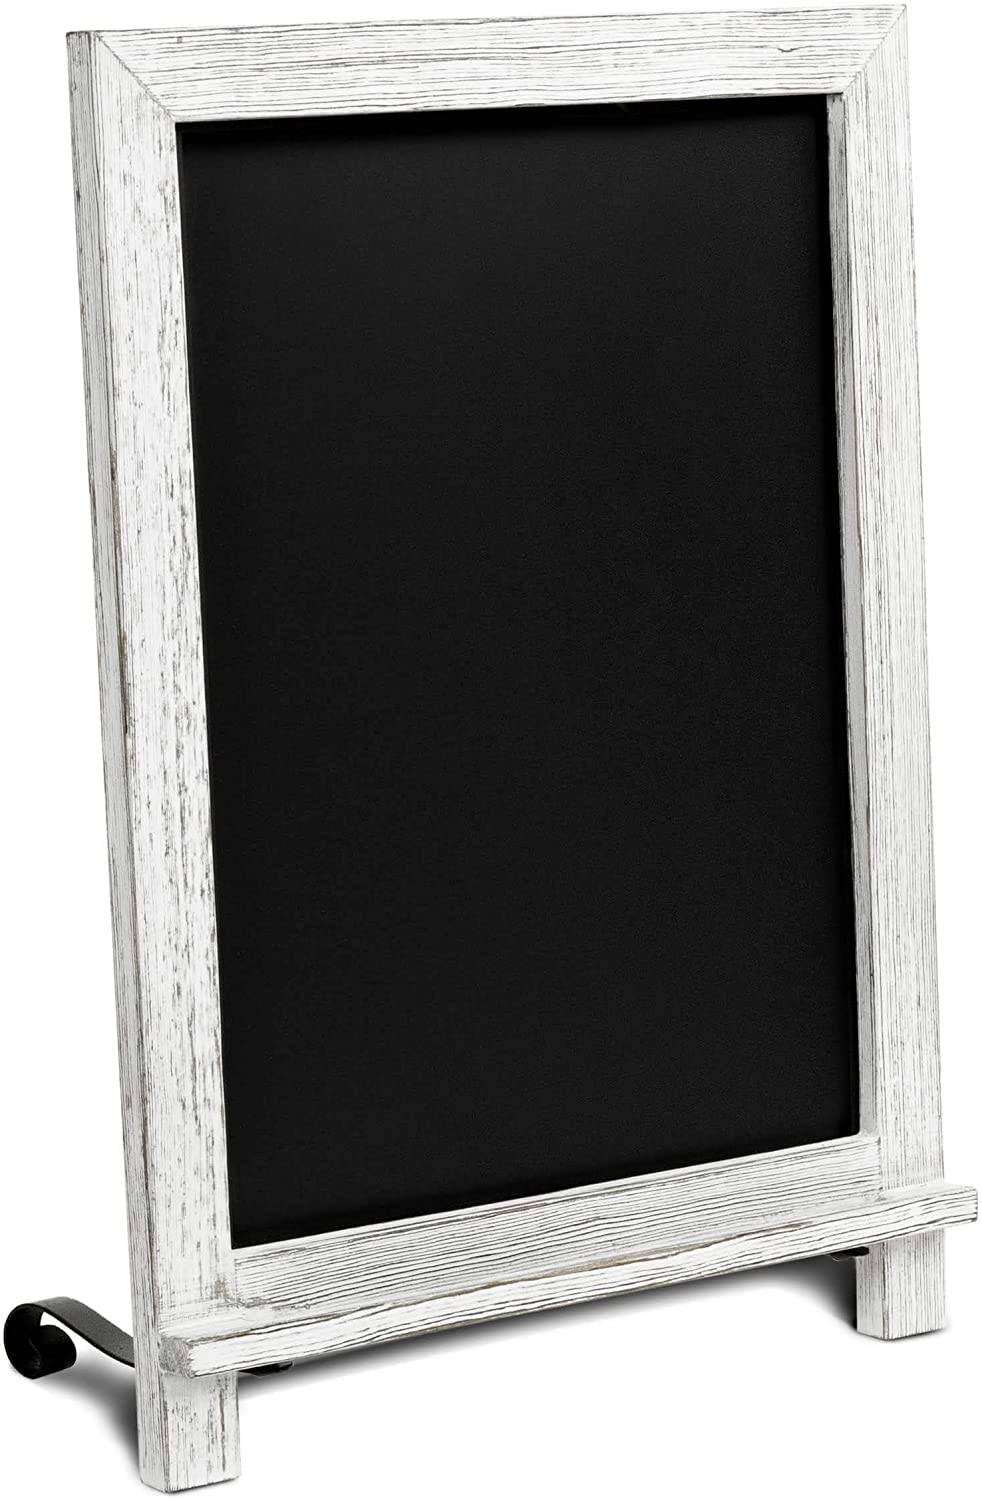 Rustic Whitewash Tabletop Chalkboard Sign / Hanging Magnetic Wall Chalkboard / Small Countertop Chalkboard Easel / Kitchen Countertop Memo Board / 12